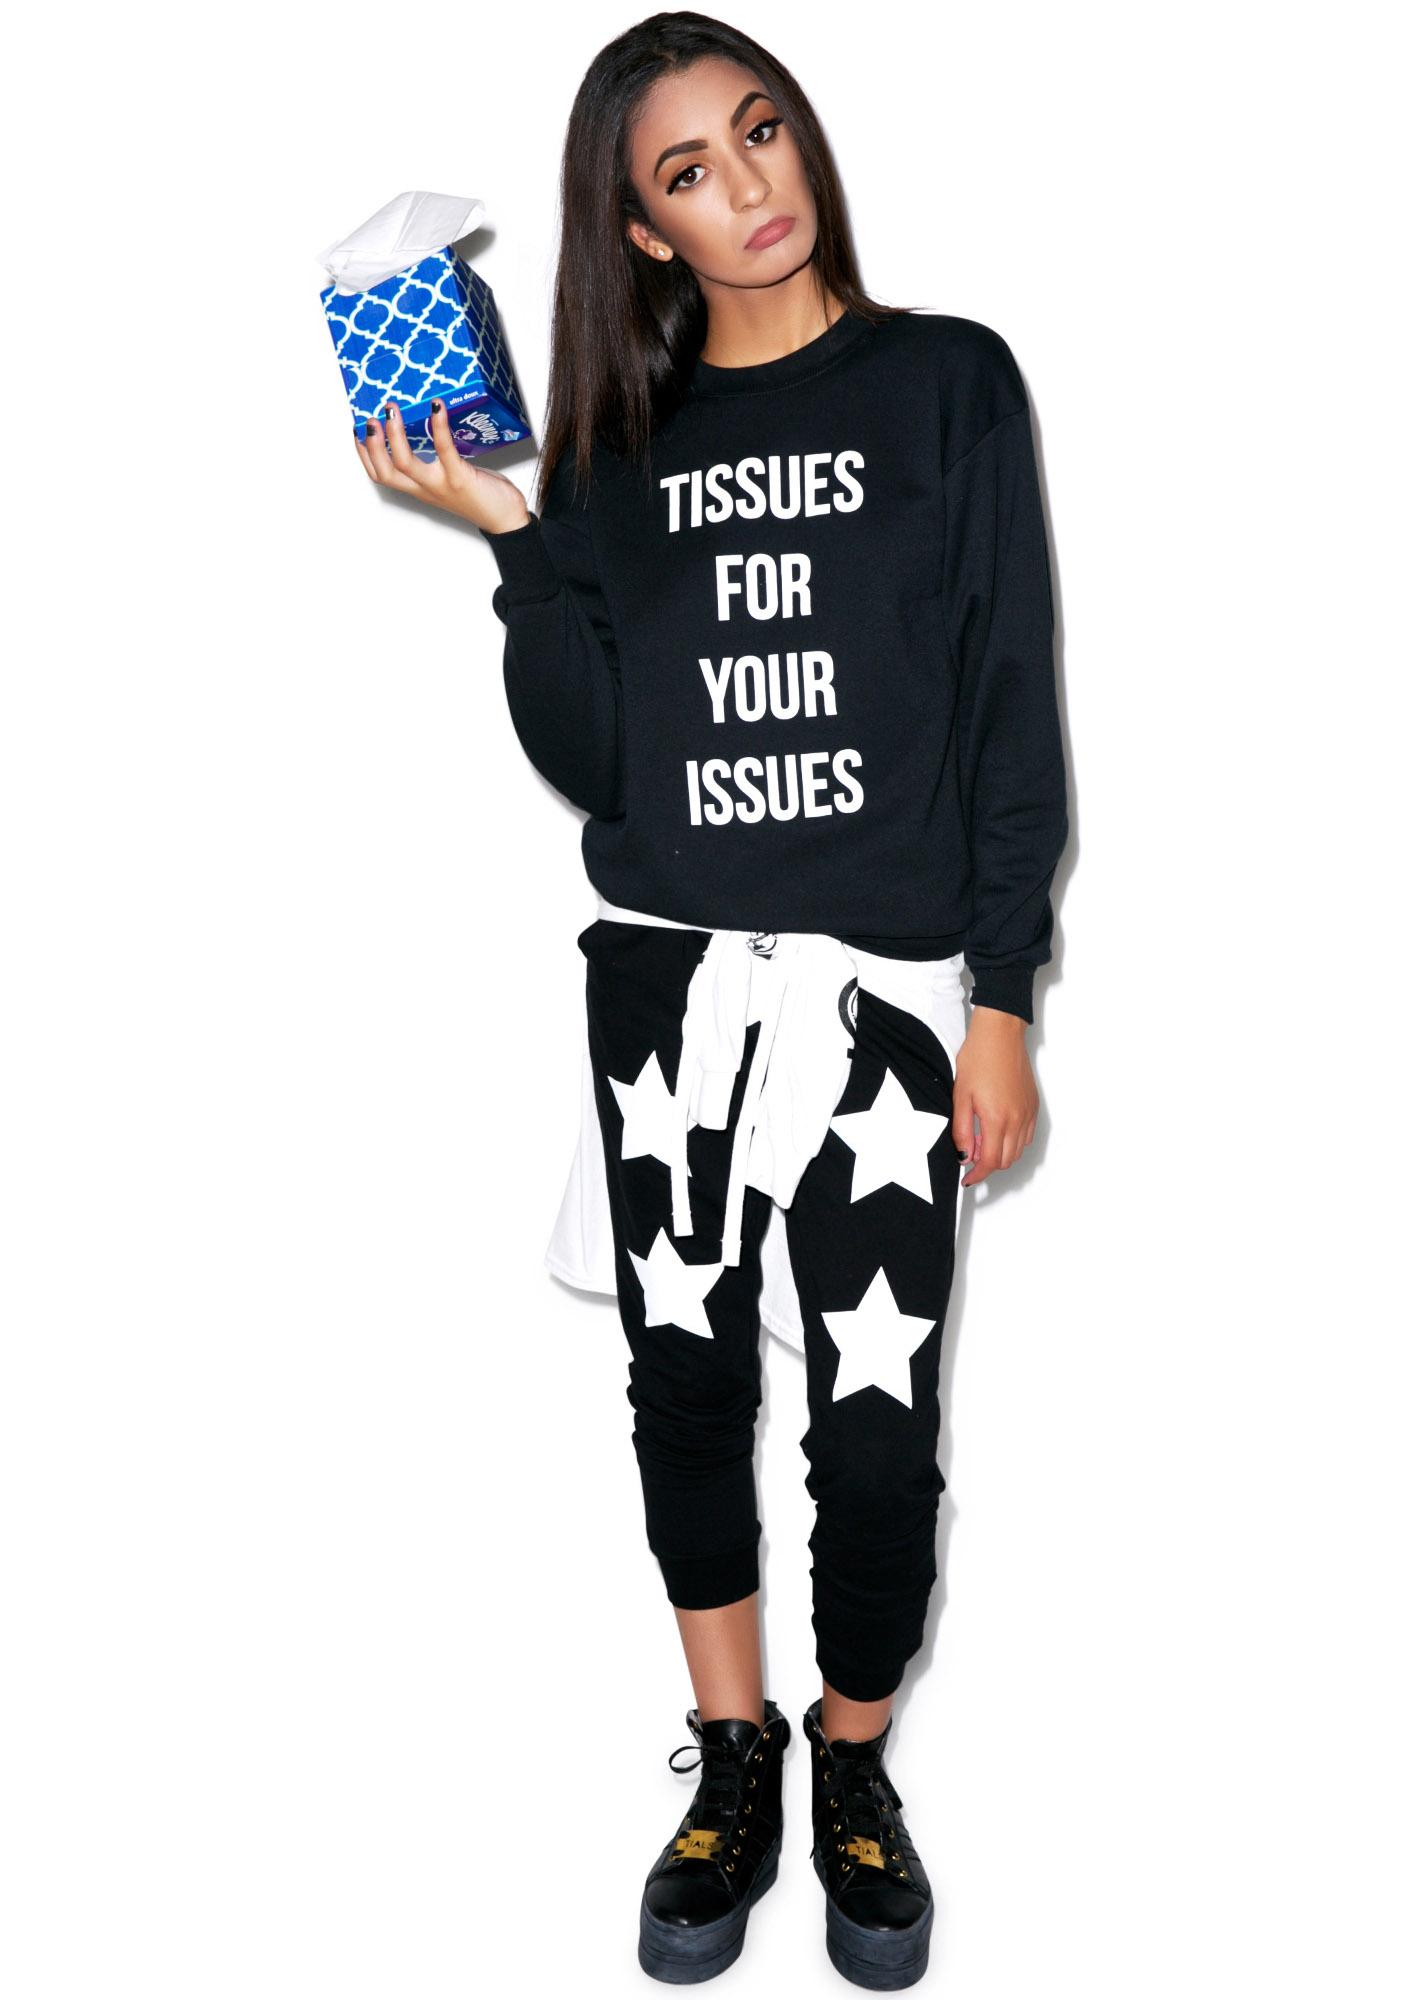 Petals and Peacocks Tissues Sweatshirt